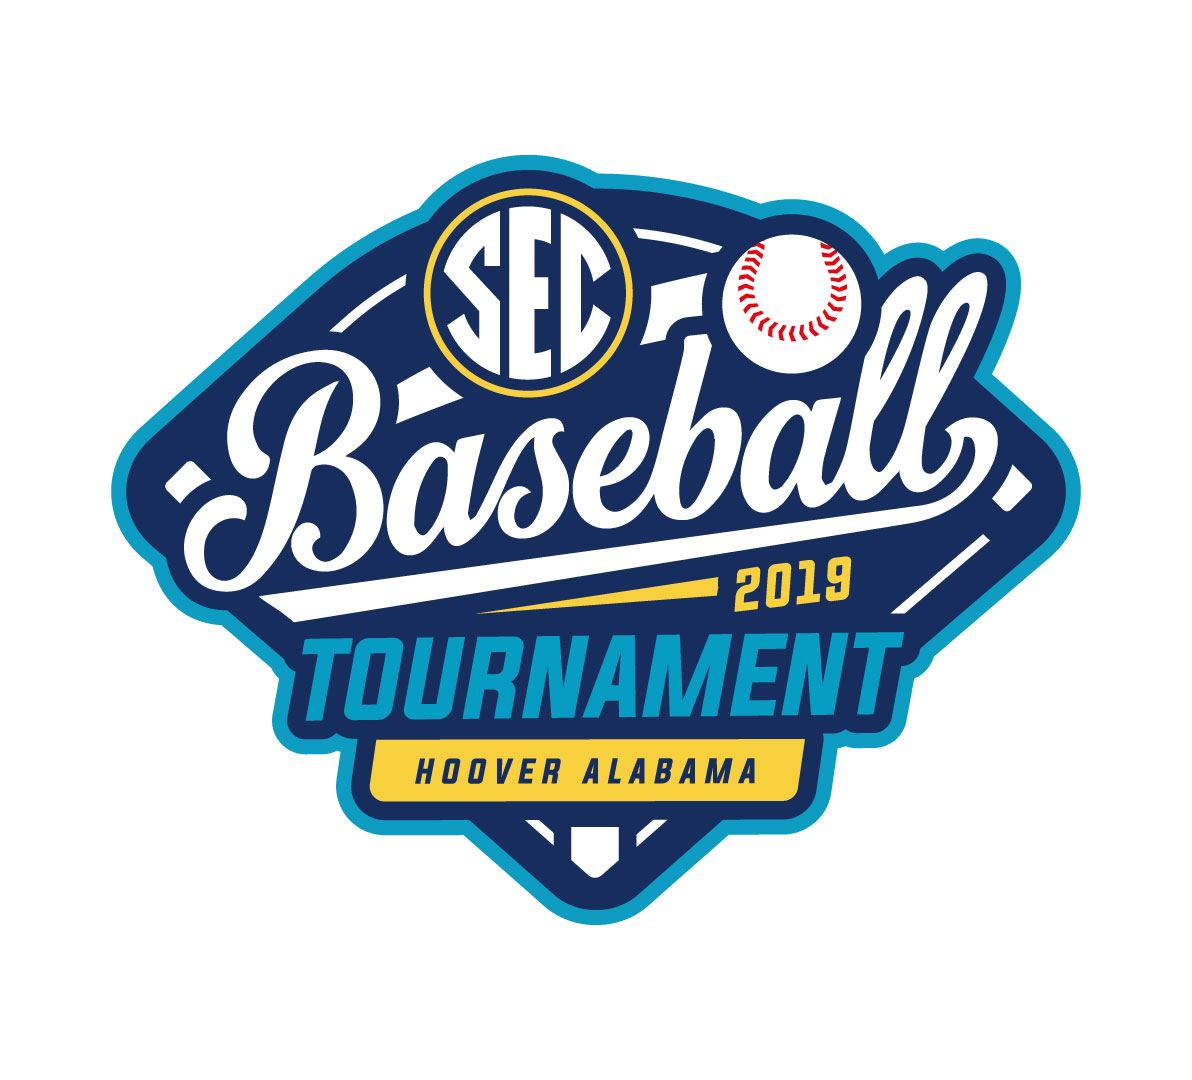 2019 SEC Baseball Tournament